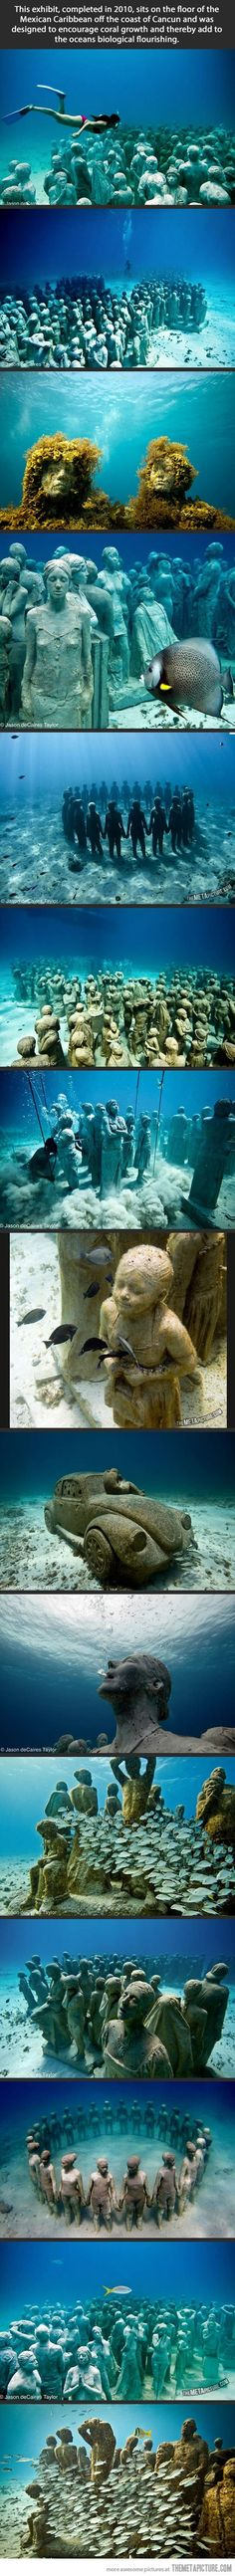 Amazing underwater museum… Underwater Sculpture, Cancun Vacation, Vacation Trips, Mexico Vacation, Vacations, Cancun Mexico, Places To Travel, Travel Destinations, Places To Visit